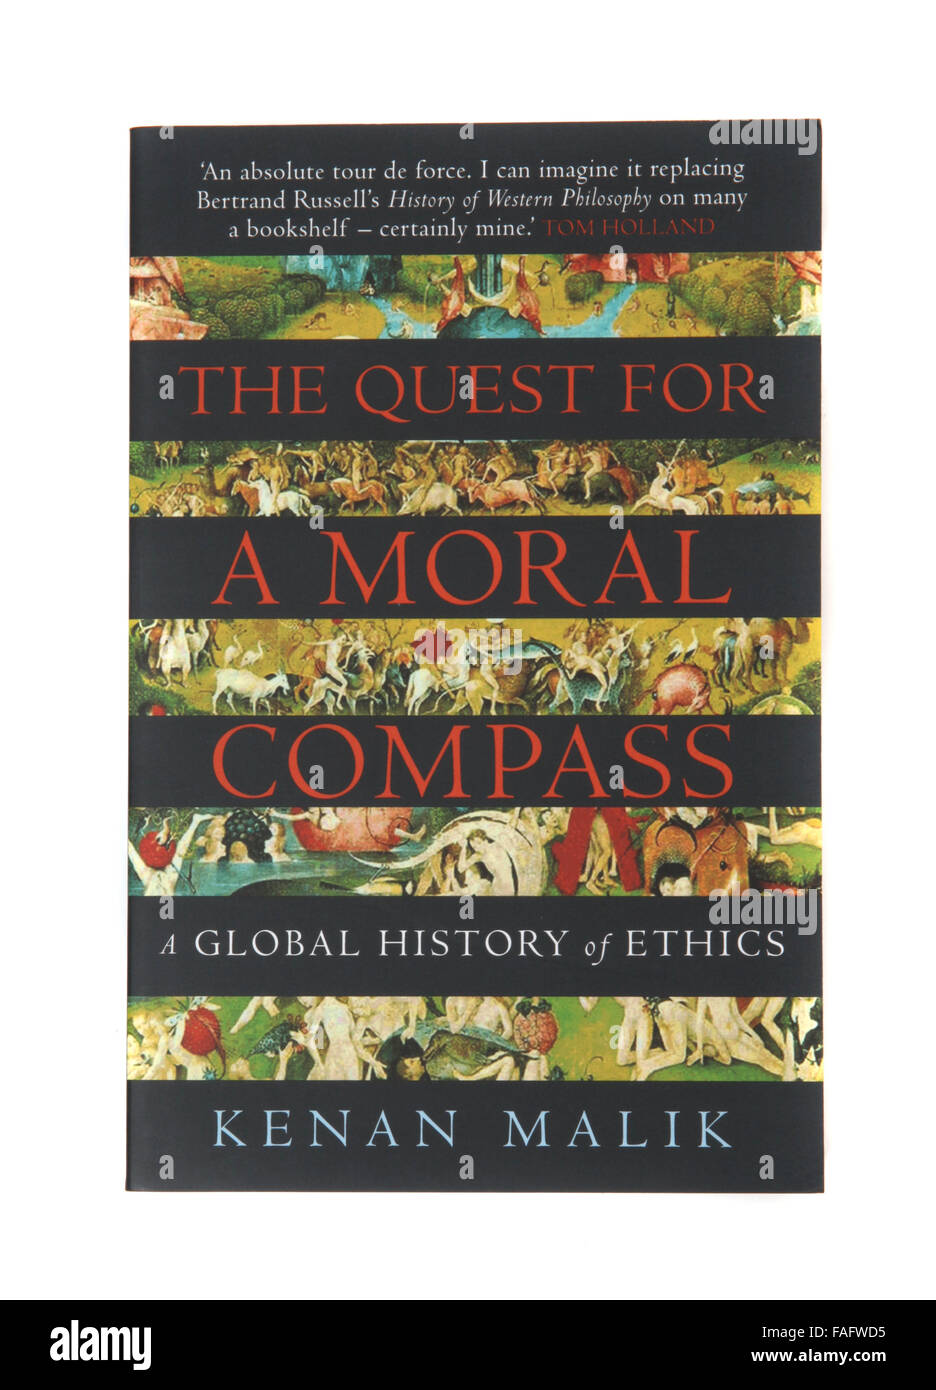 The book The Quest for a Moral Compass a Global History of ethics by Kenan Malik. - Stock Image